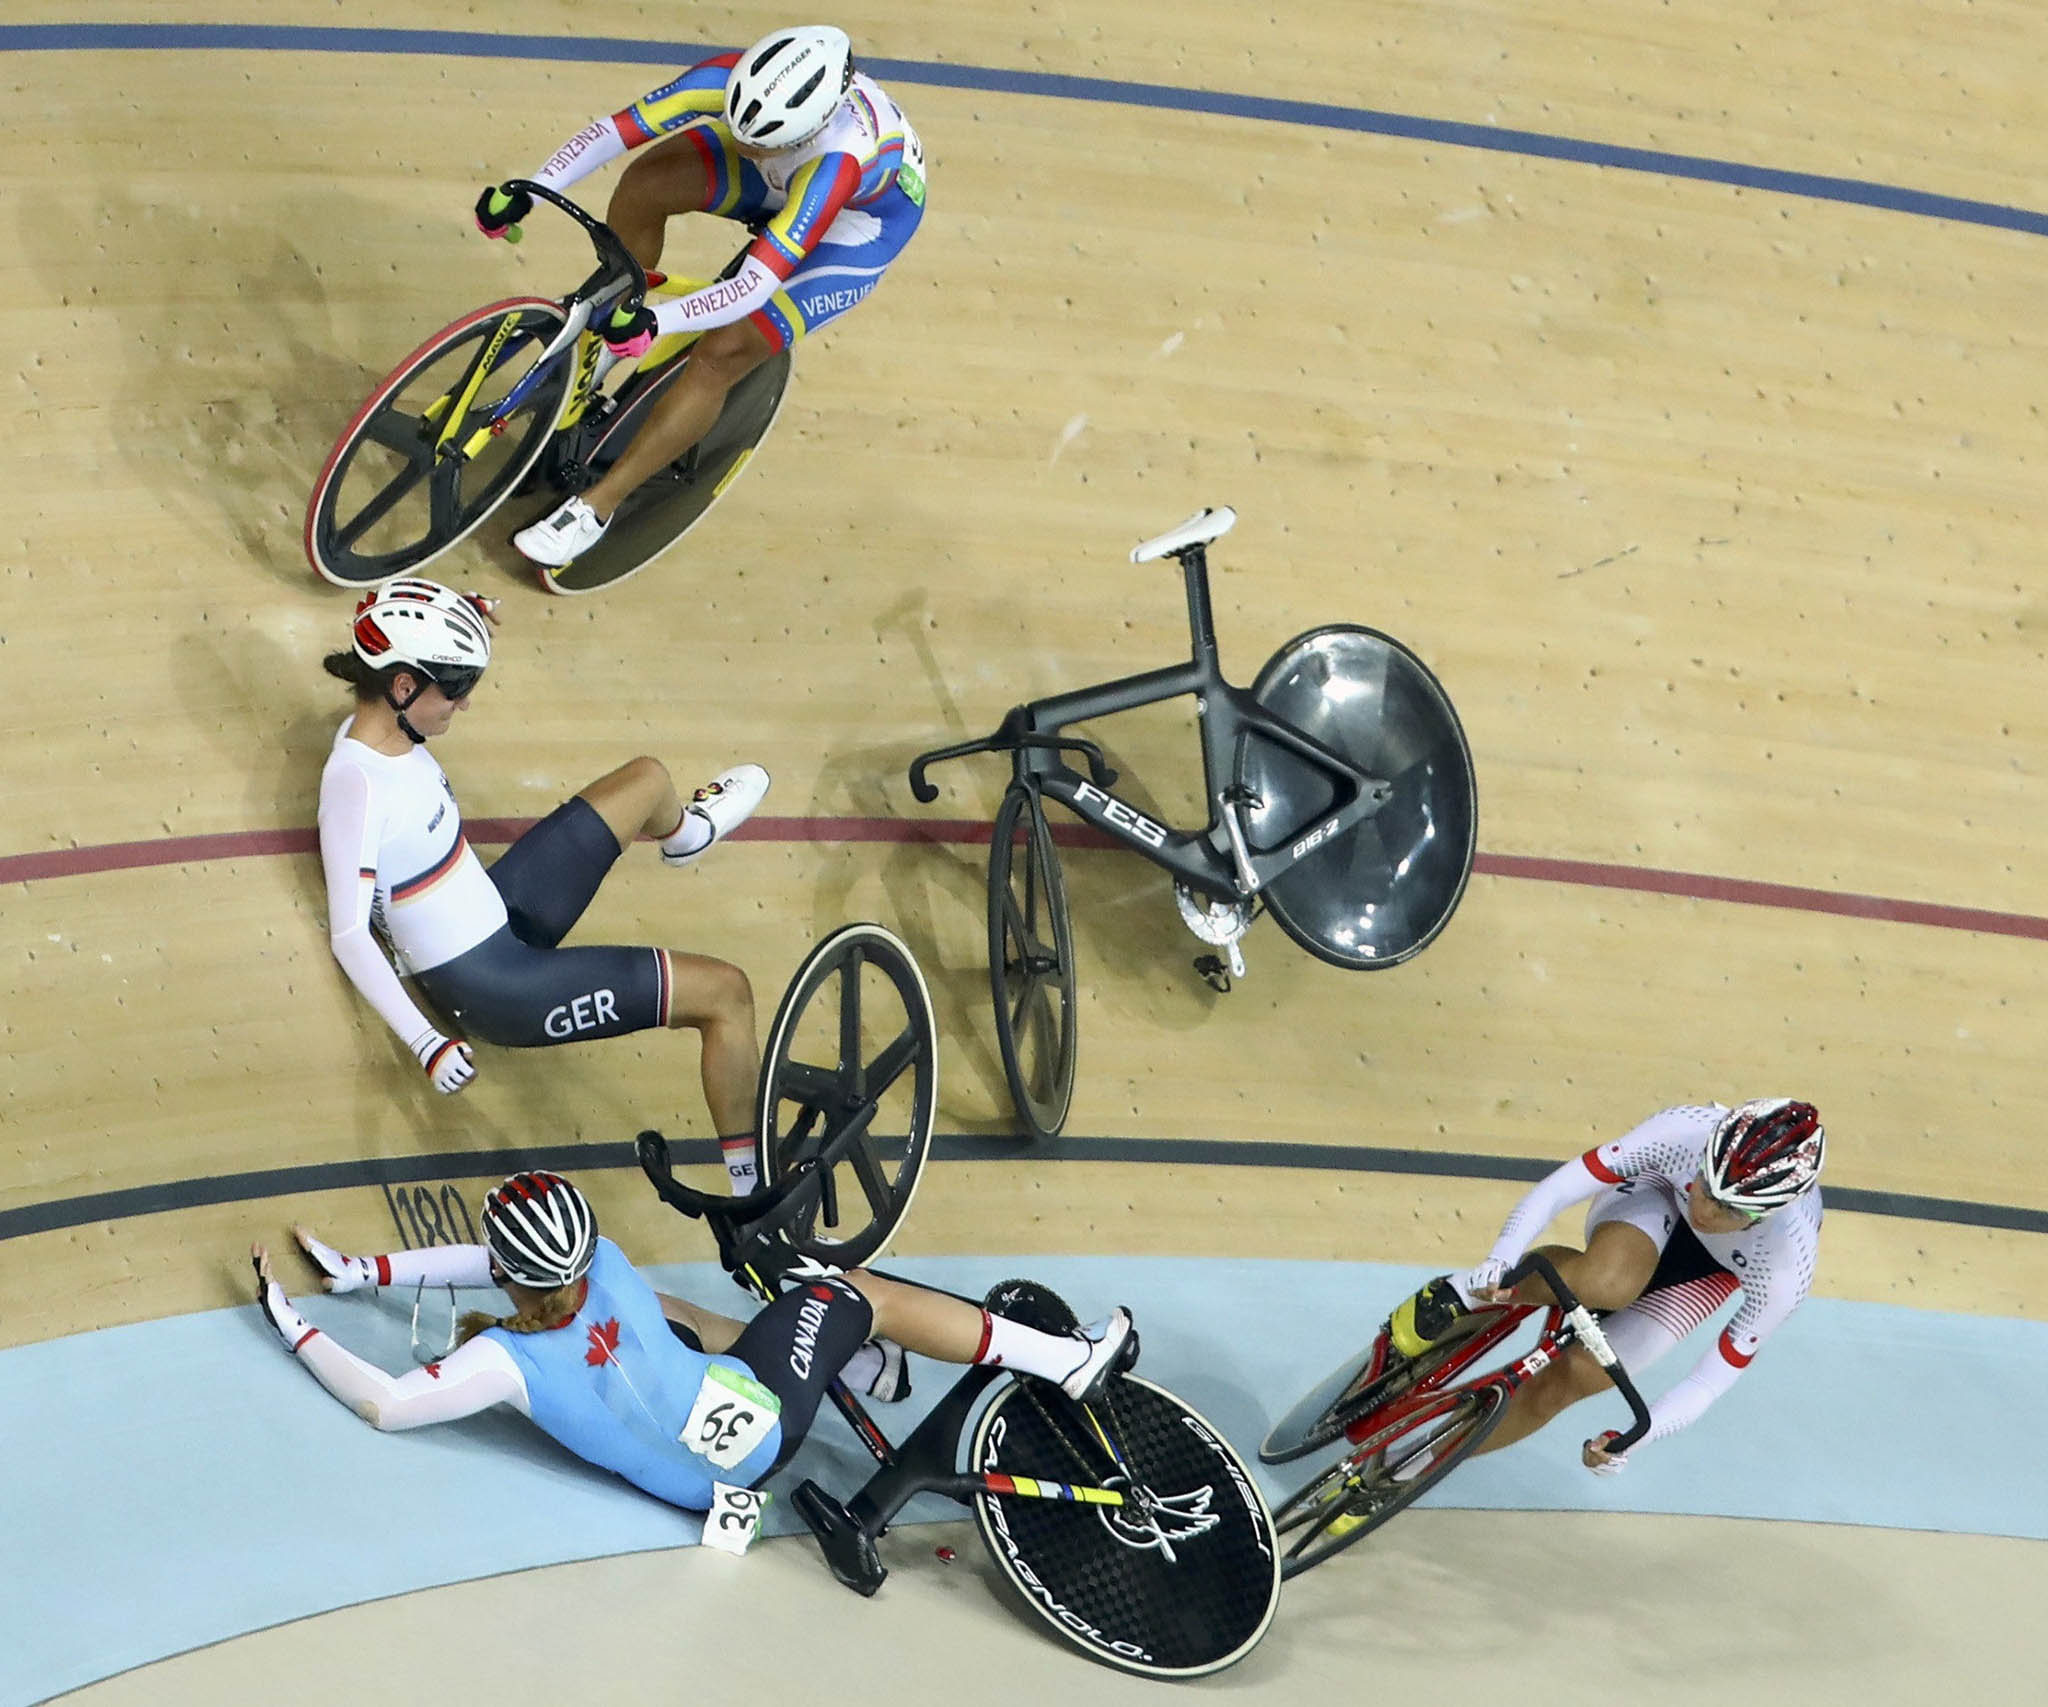 Anna Knauer of Germany and Allison Beveridge of Canada crash during the final of the Women's Omnium 10km Scratch Race